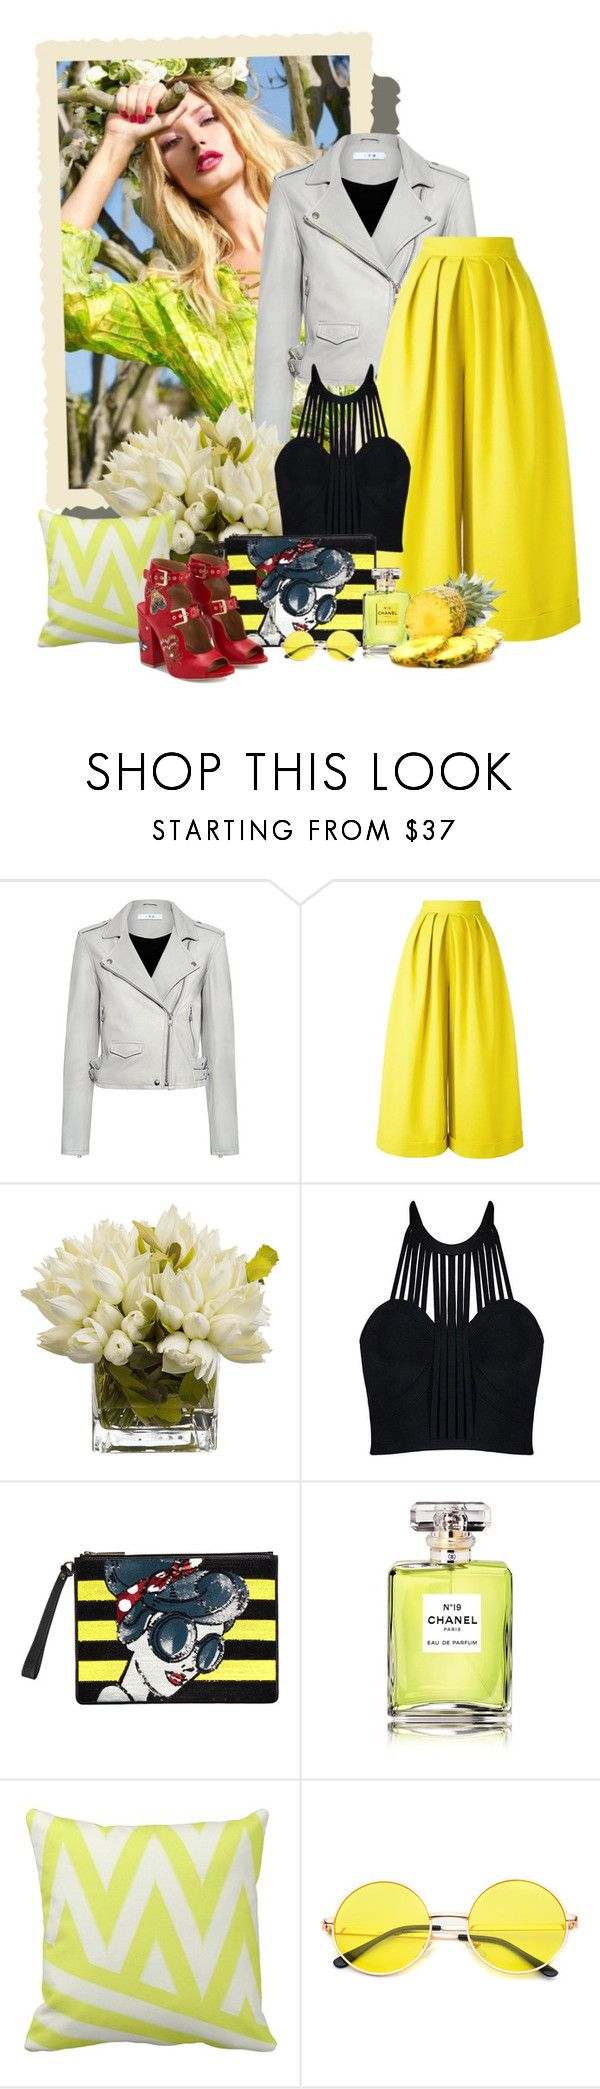 """""""желтые тюльпаны"""" by www-gufi ❤ liked on Polyvore featuring IRO, Delpozo, Alice + Olivia, Chanel and Laurence Dacade"""